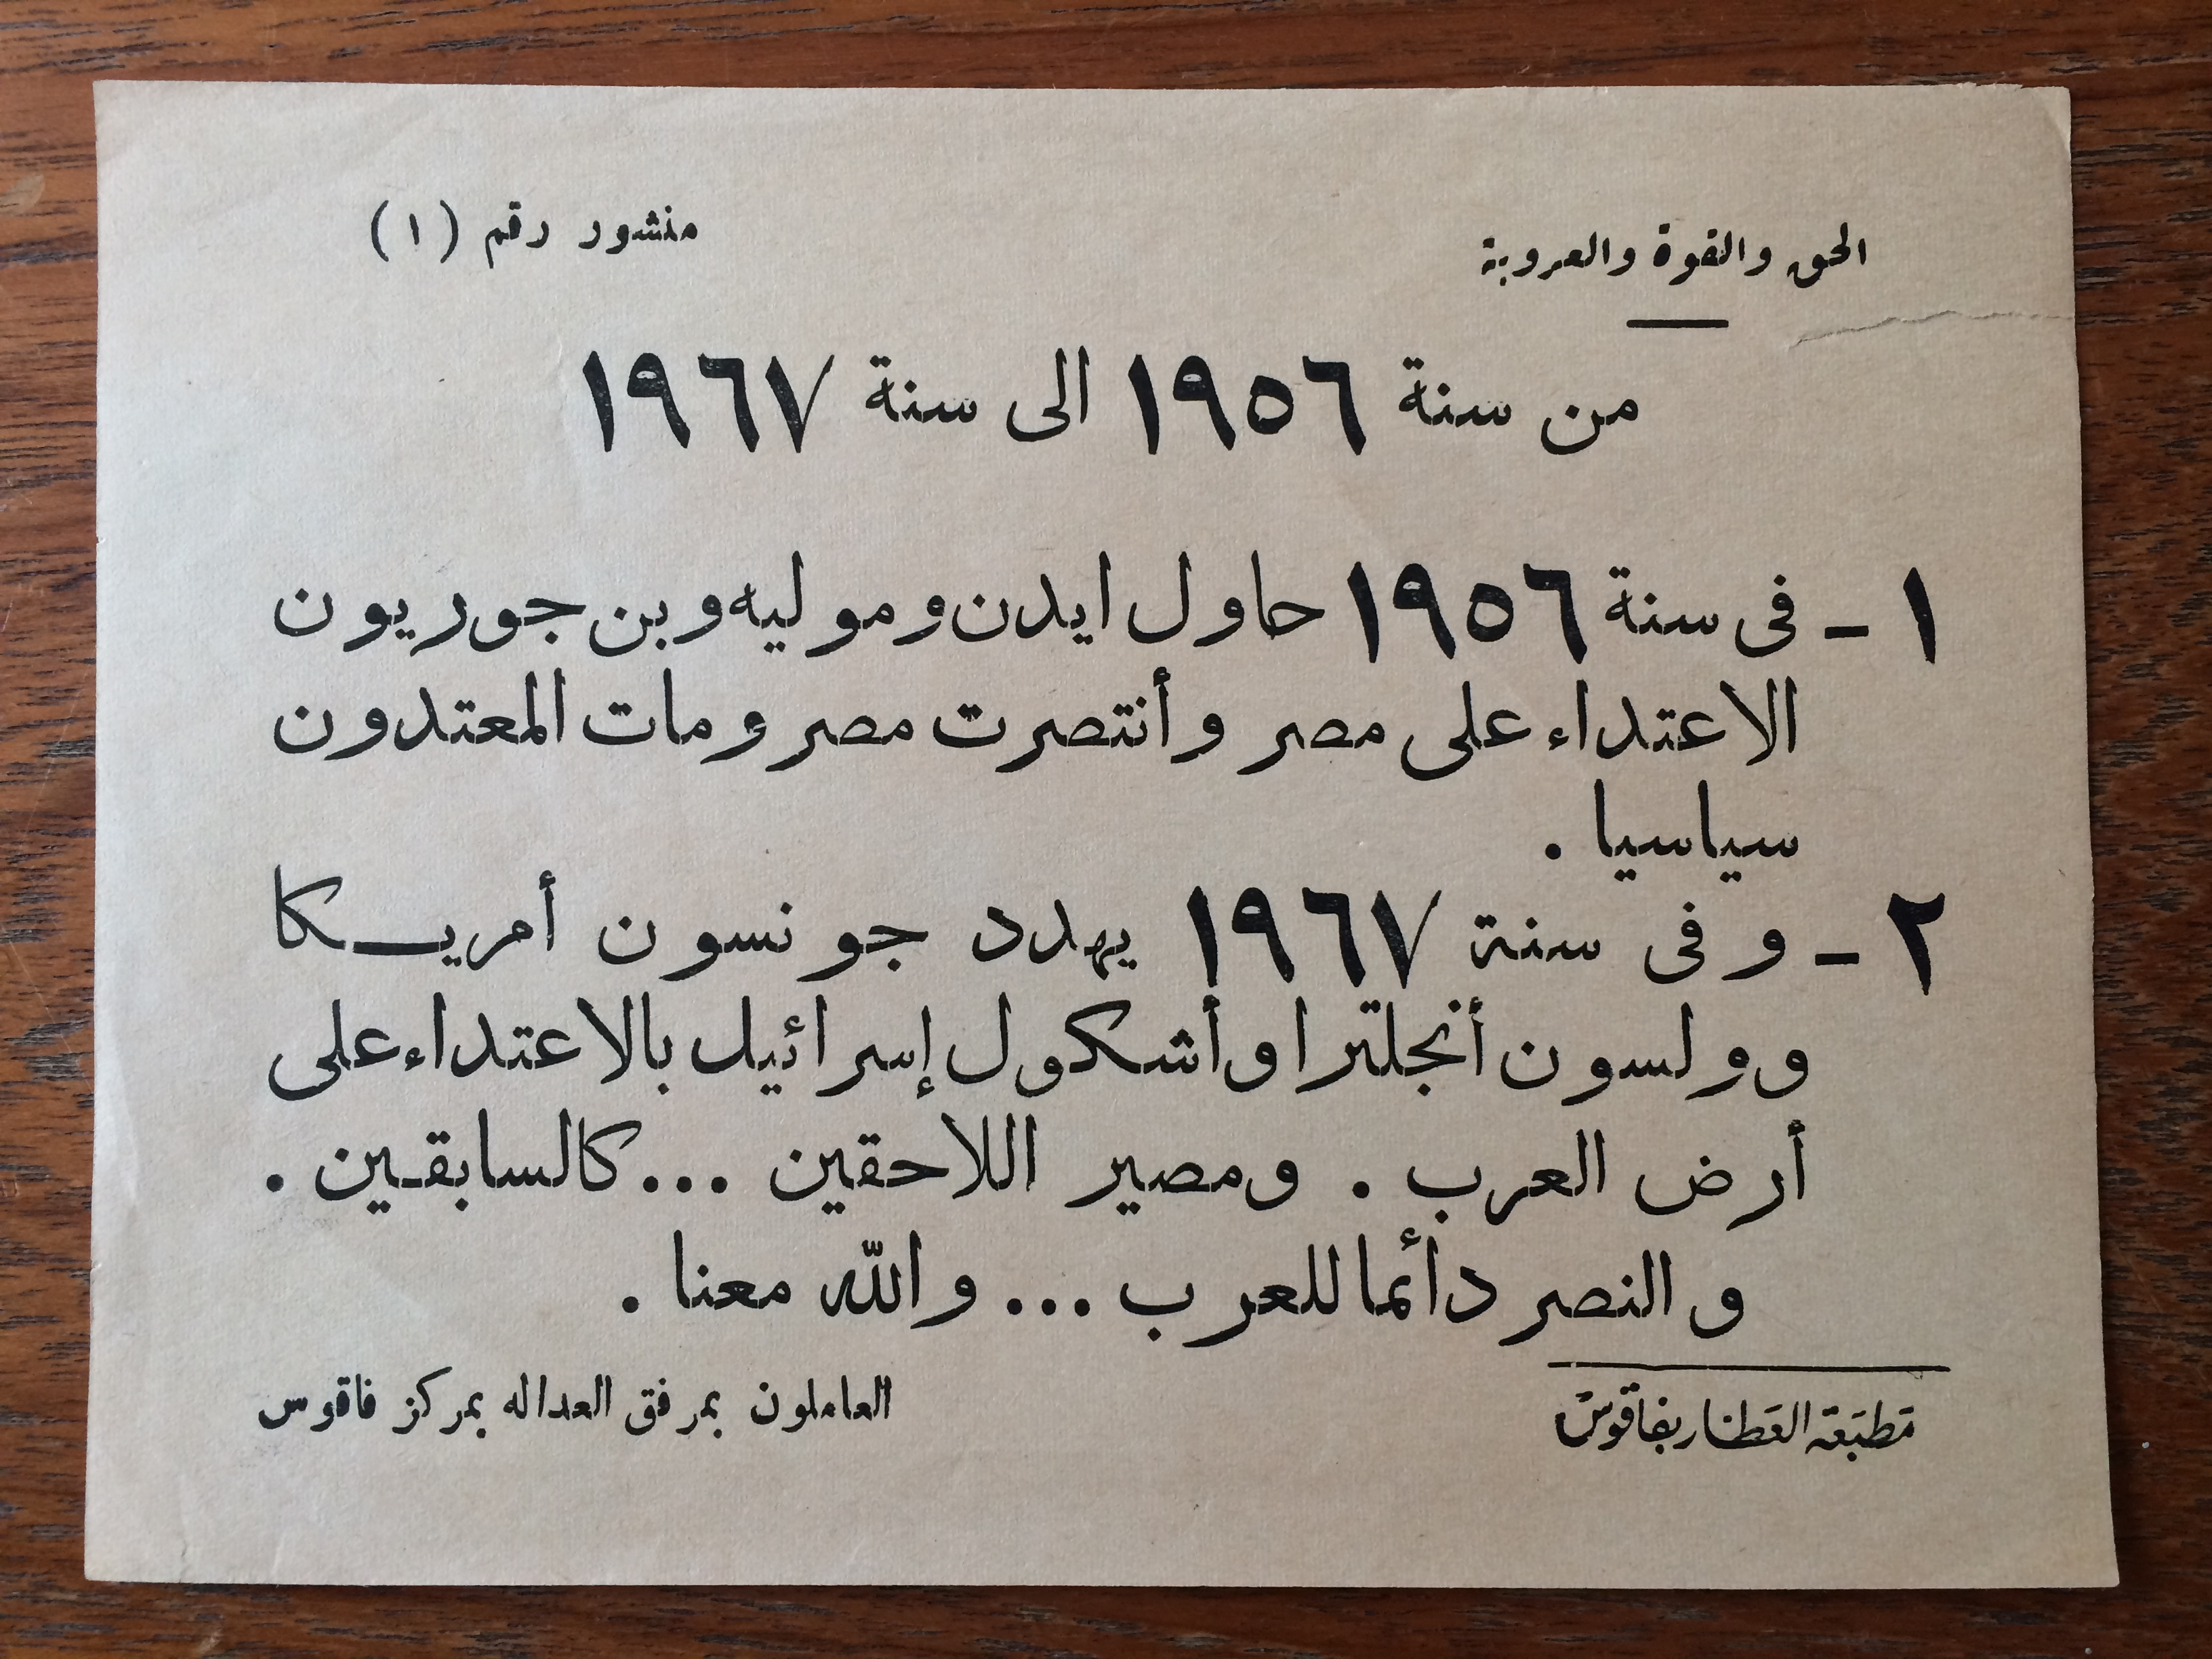 Leaflet no. 1: Arab-Israeli war 1967